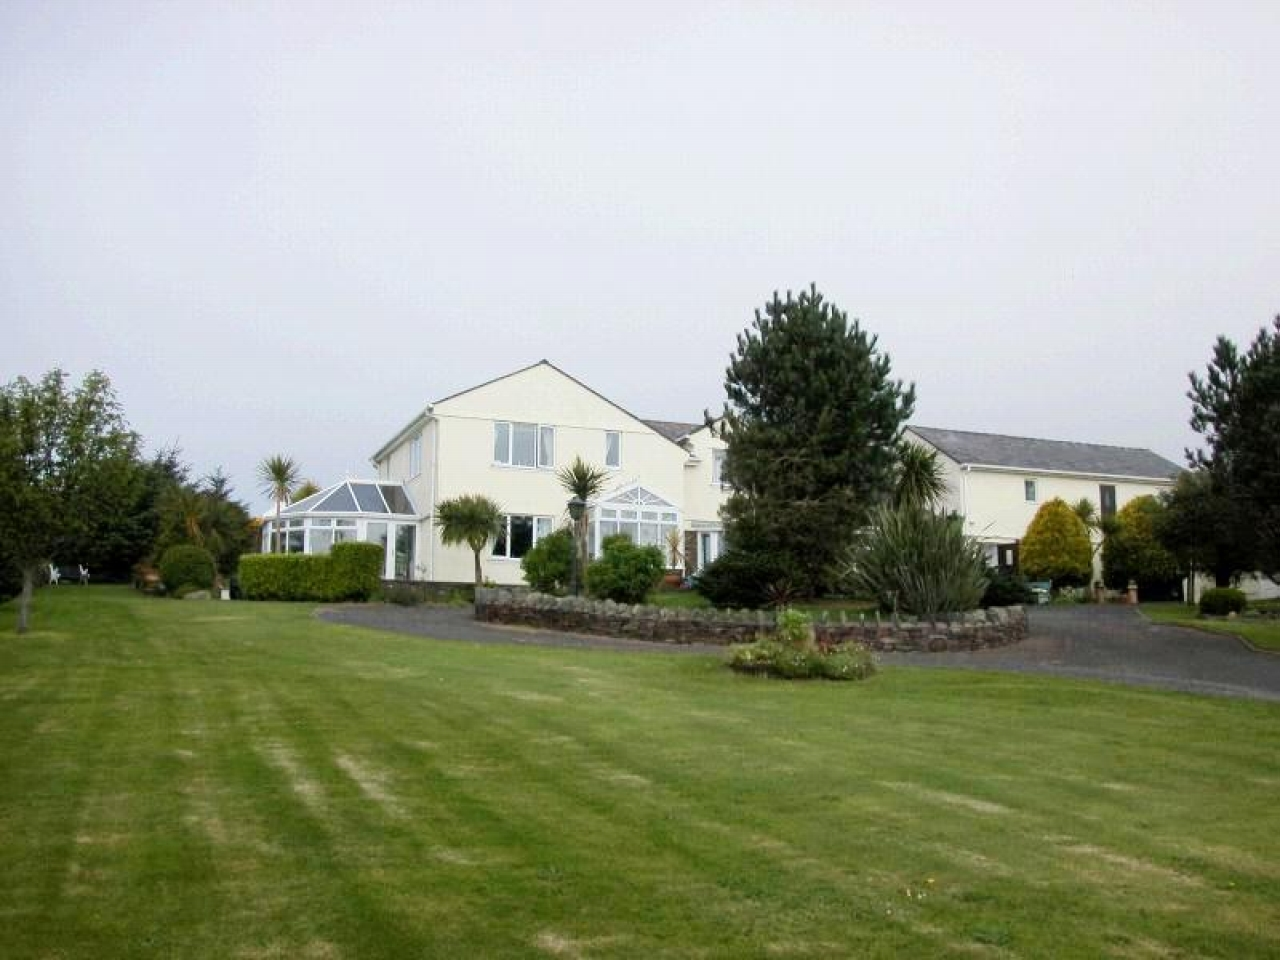 4 bedroom detached house For Sale in Laxey - 17